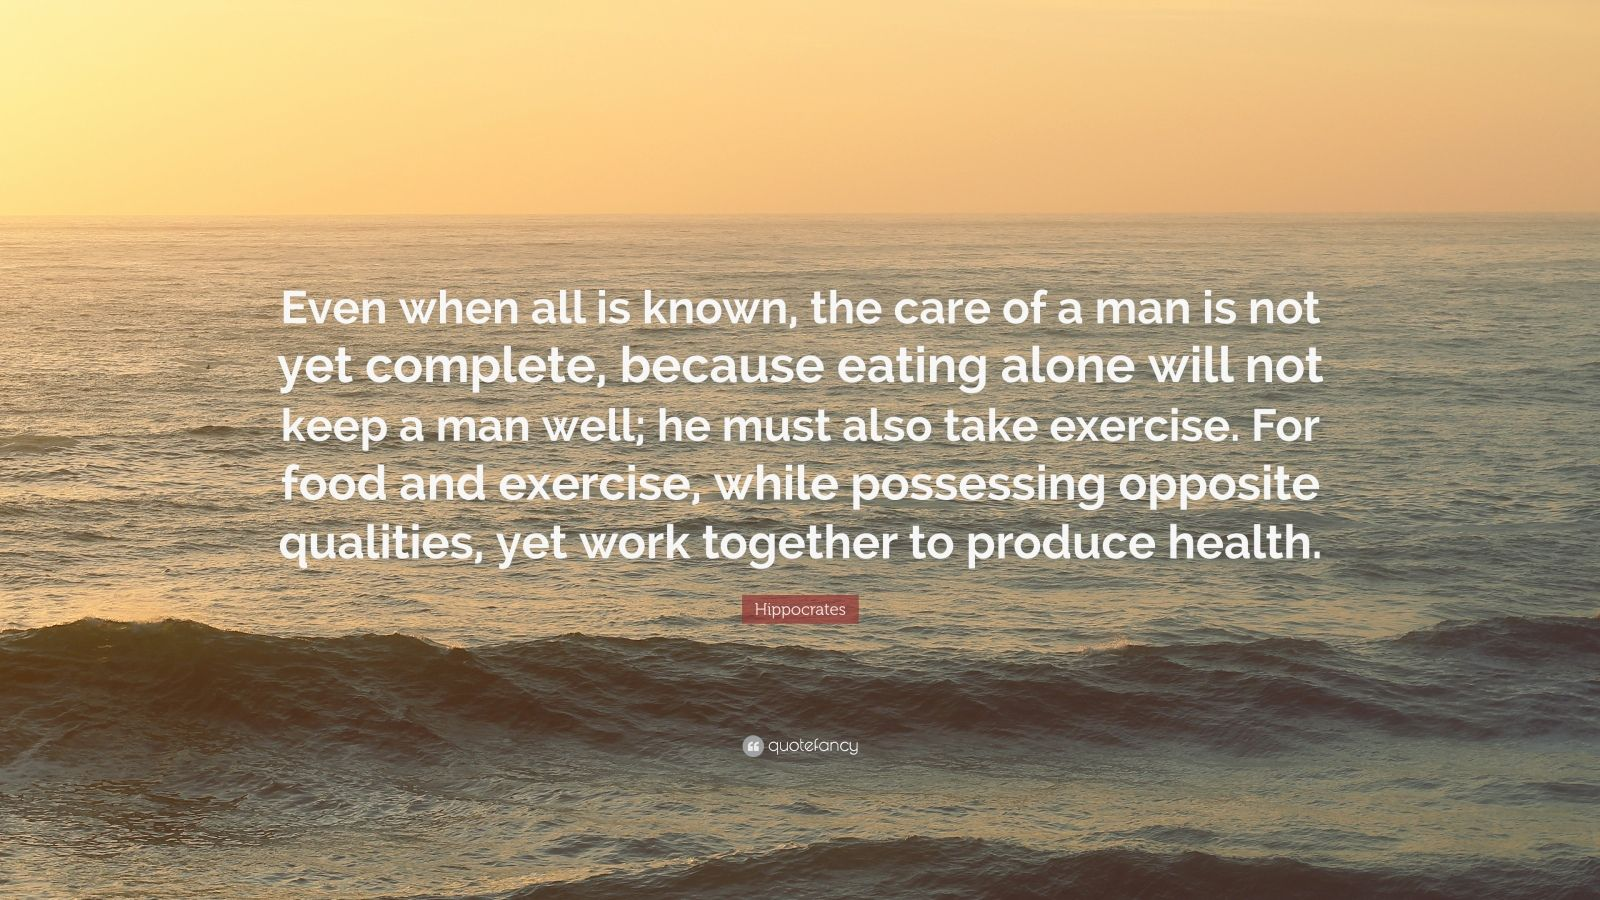 """Hippocrates Quote: """"Even when all is known, the care of a man is not yet complete, because eating alone will not keep a man well; he must also take exercise. For food and exercise, while possessing opposite qualities, yet work together to produce health."""""""